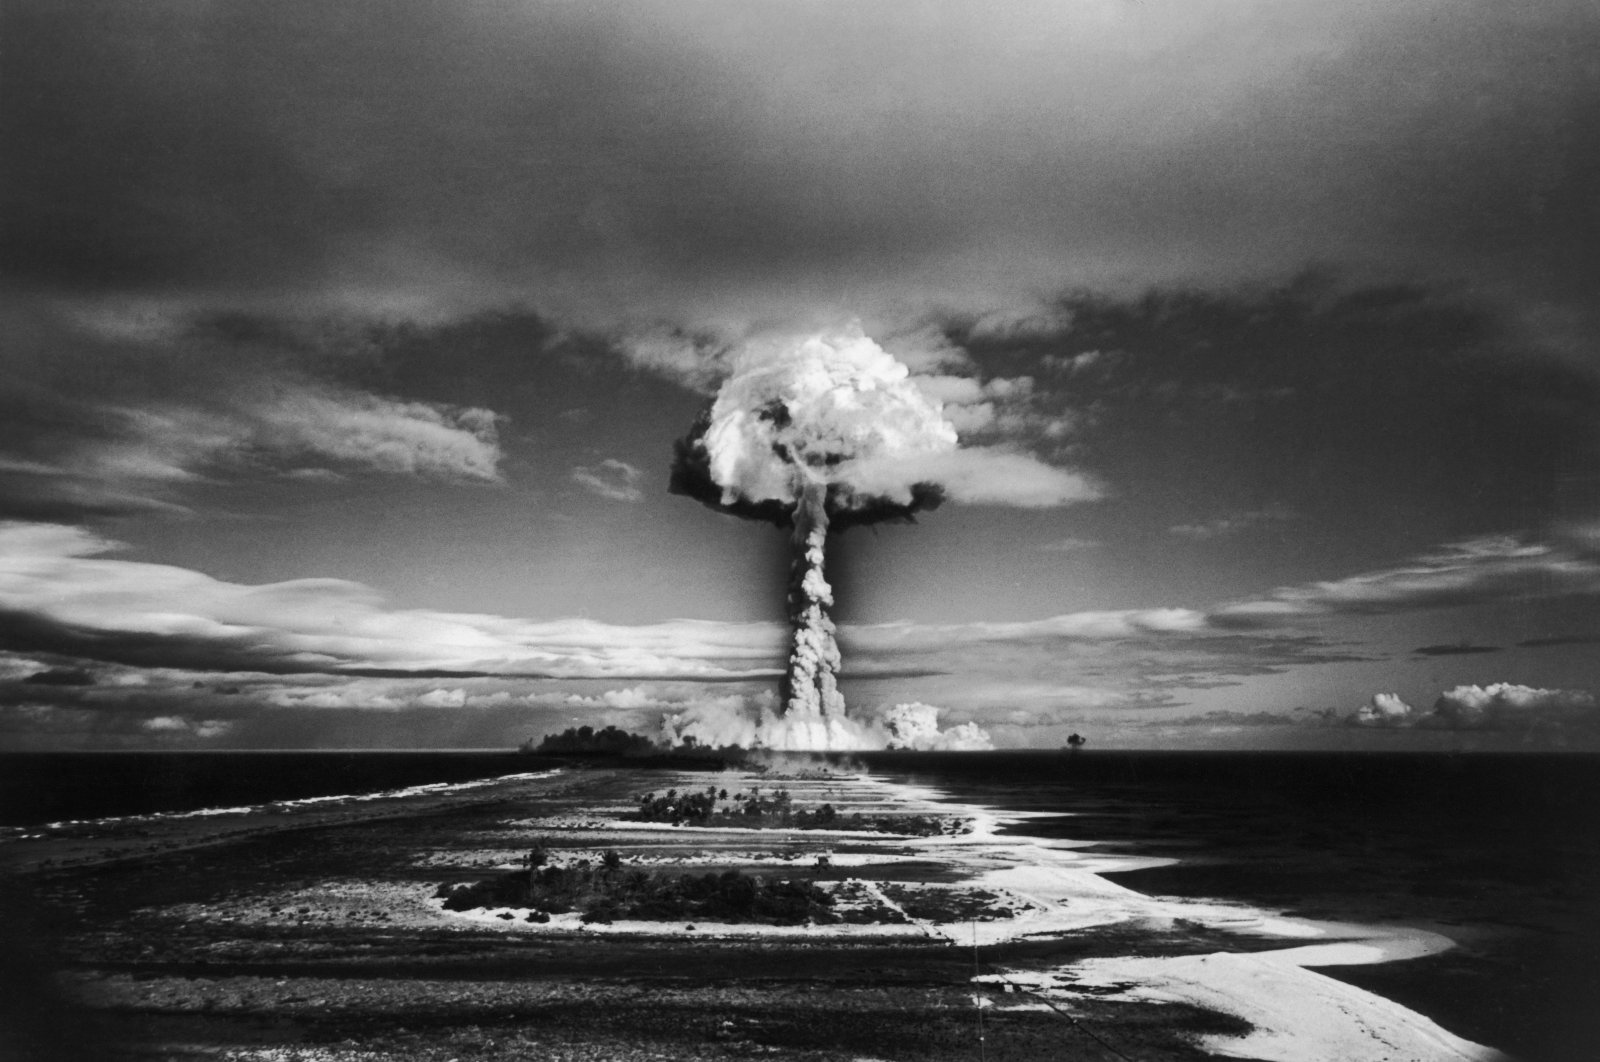 A mushroom cloud forms as a nuclear test is carried out at Mururoa, Tuamotu Archipelago in French Polynesia, Oct. 30, 1971. (Gamma-Rapho via Getty Images)